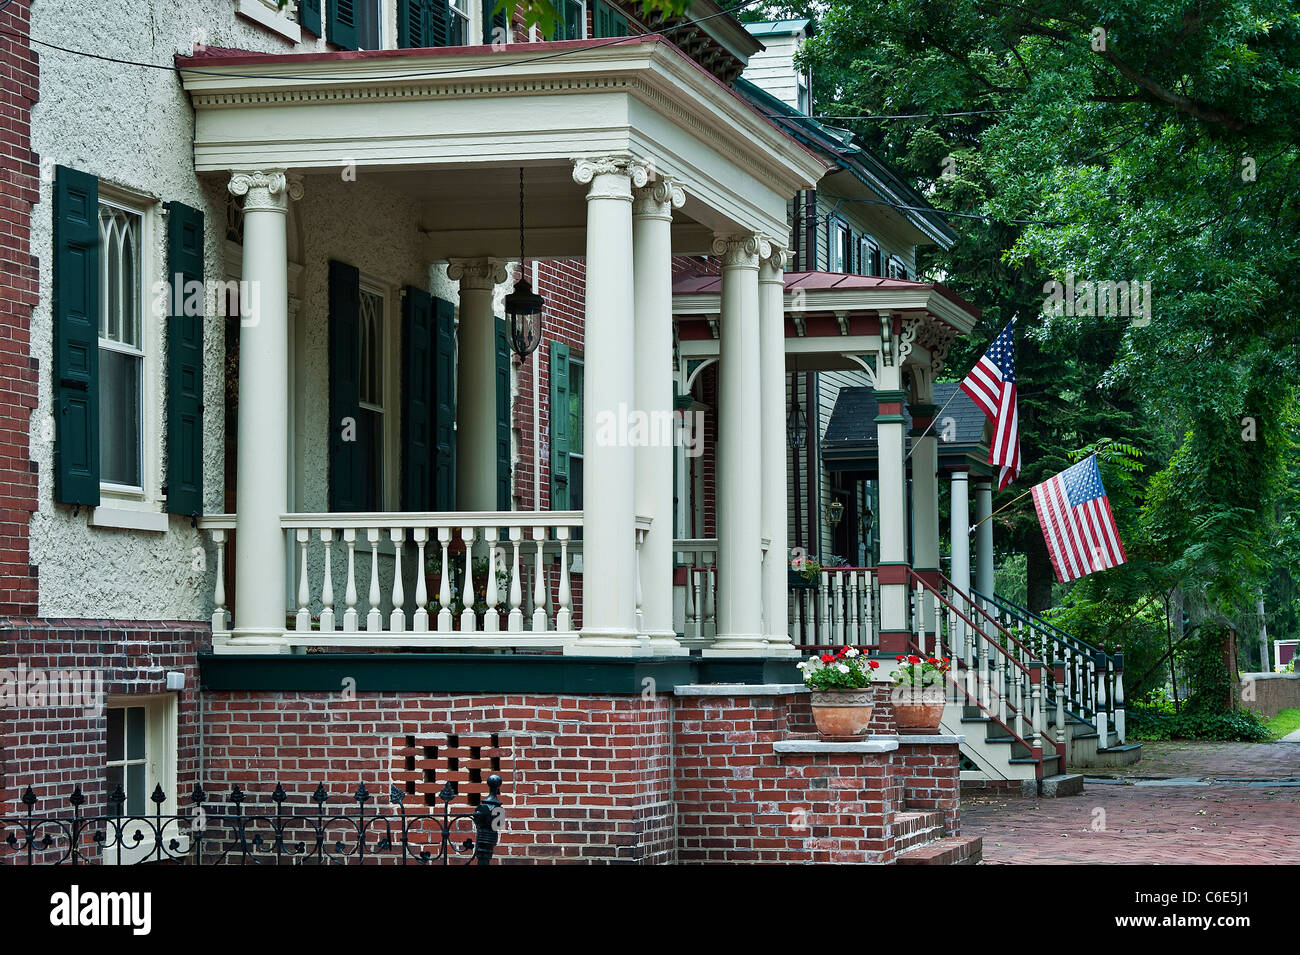 Victorion homes, High Street, Mount Holly, New Jersey, USA - Stock Image